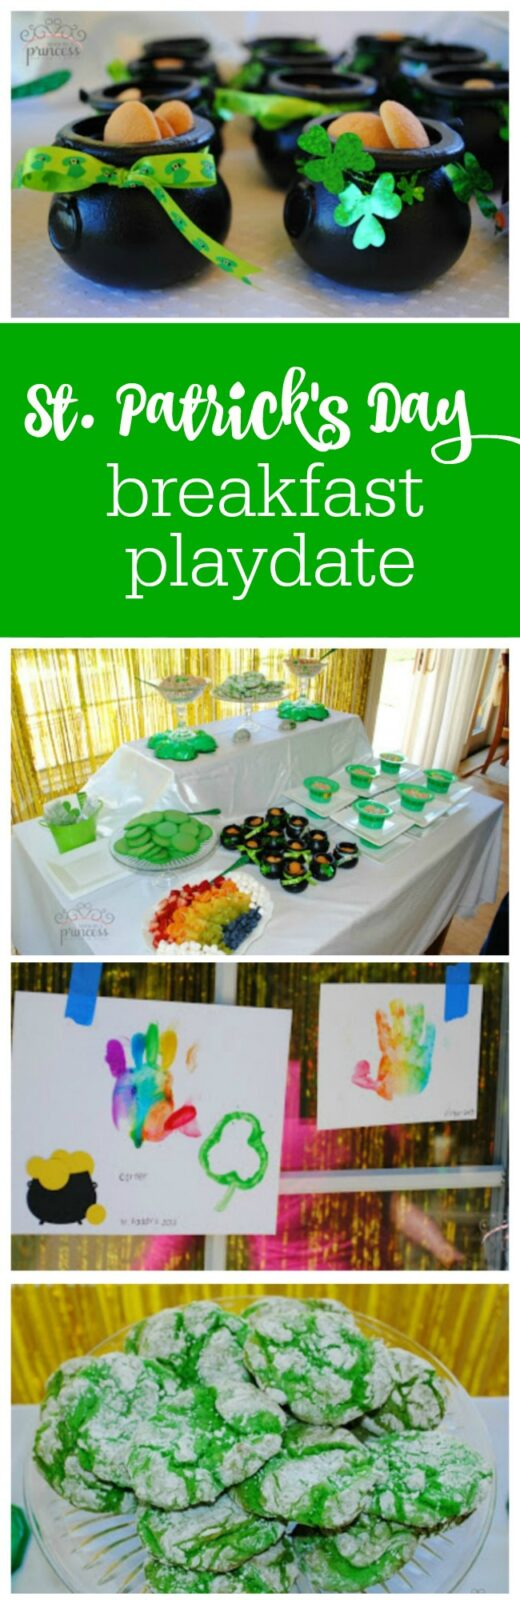 St. Patrick's Day breakfast and playdate by Made by a Princess featured on The Party Teacher